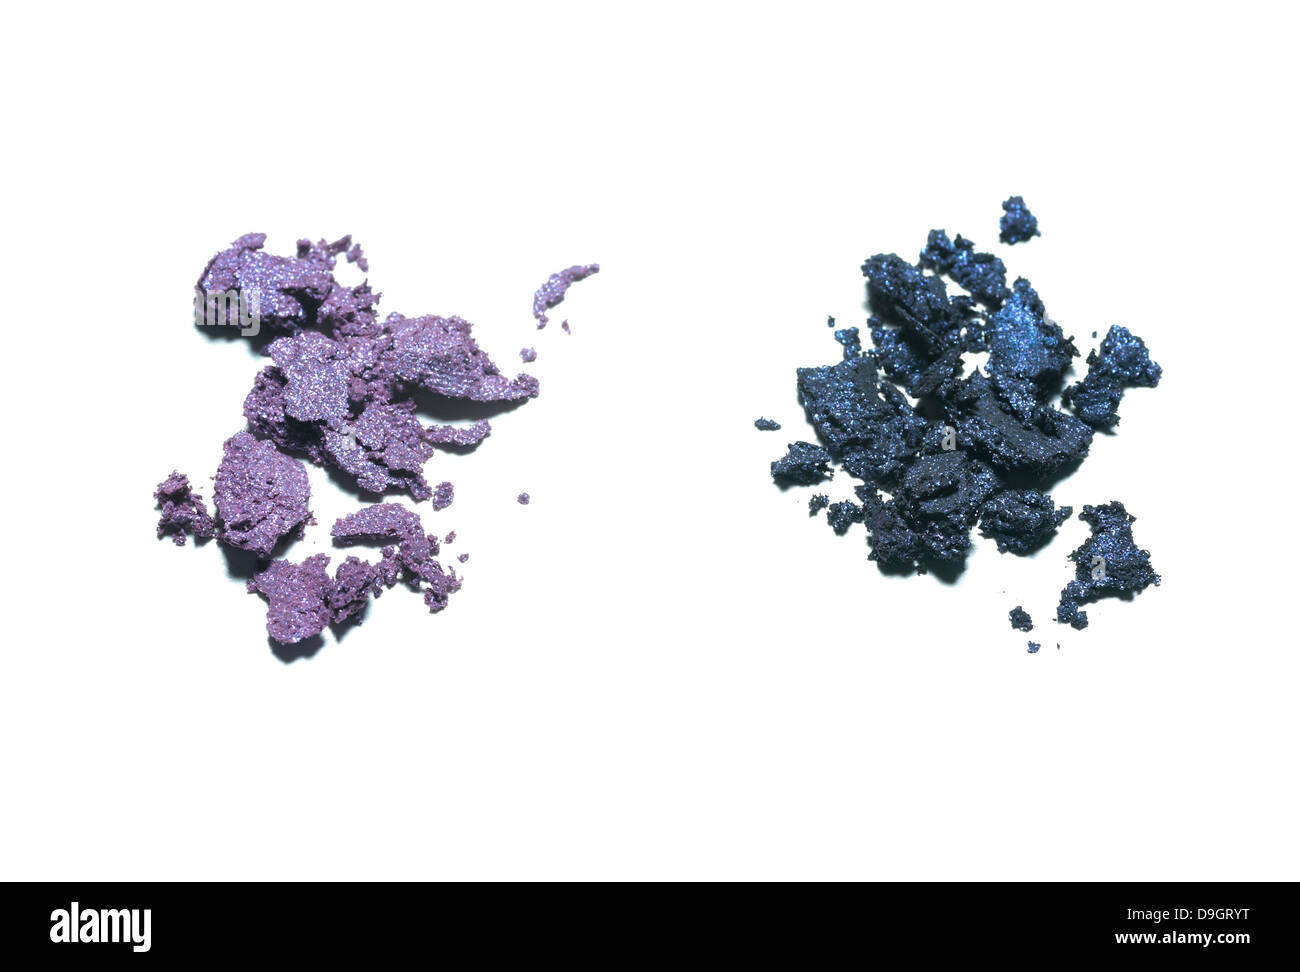 loose purple eyeshadow powder cut out onto a white background - Stock Image